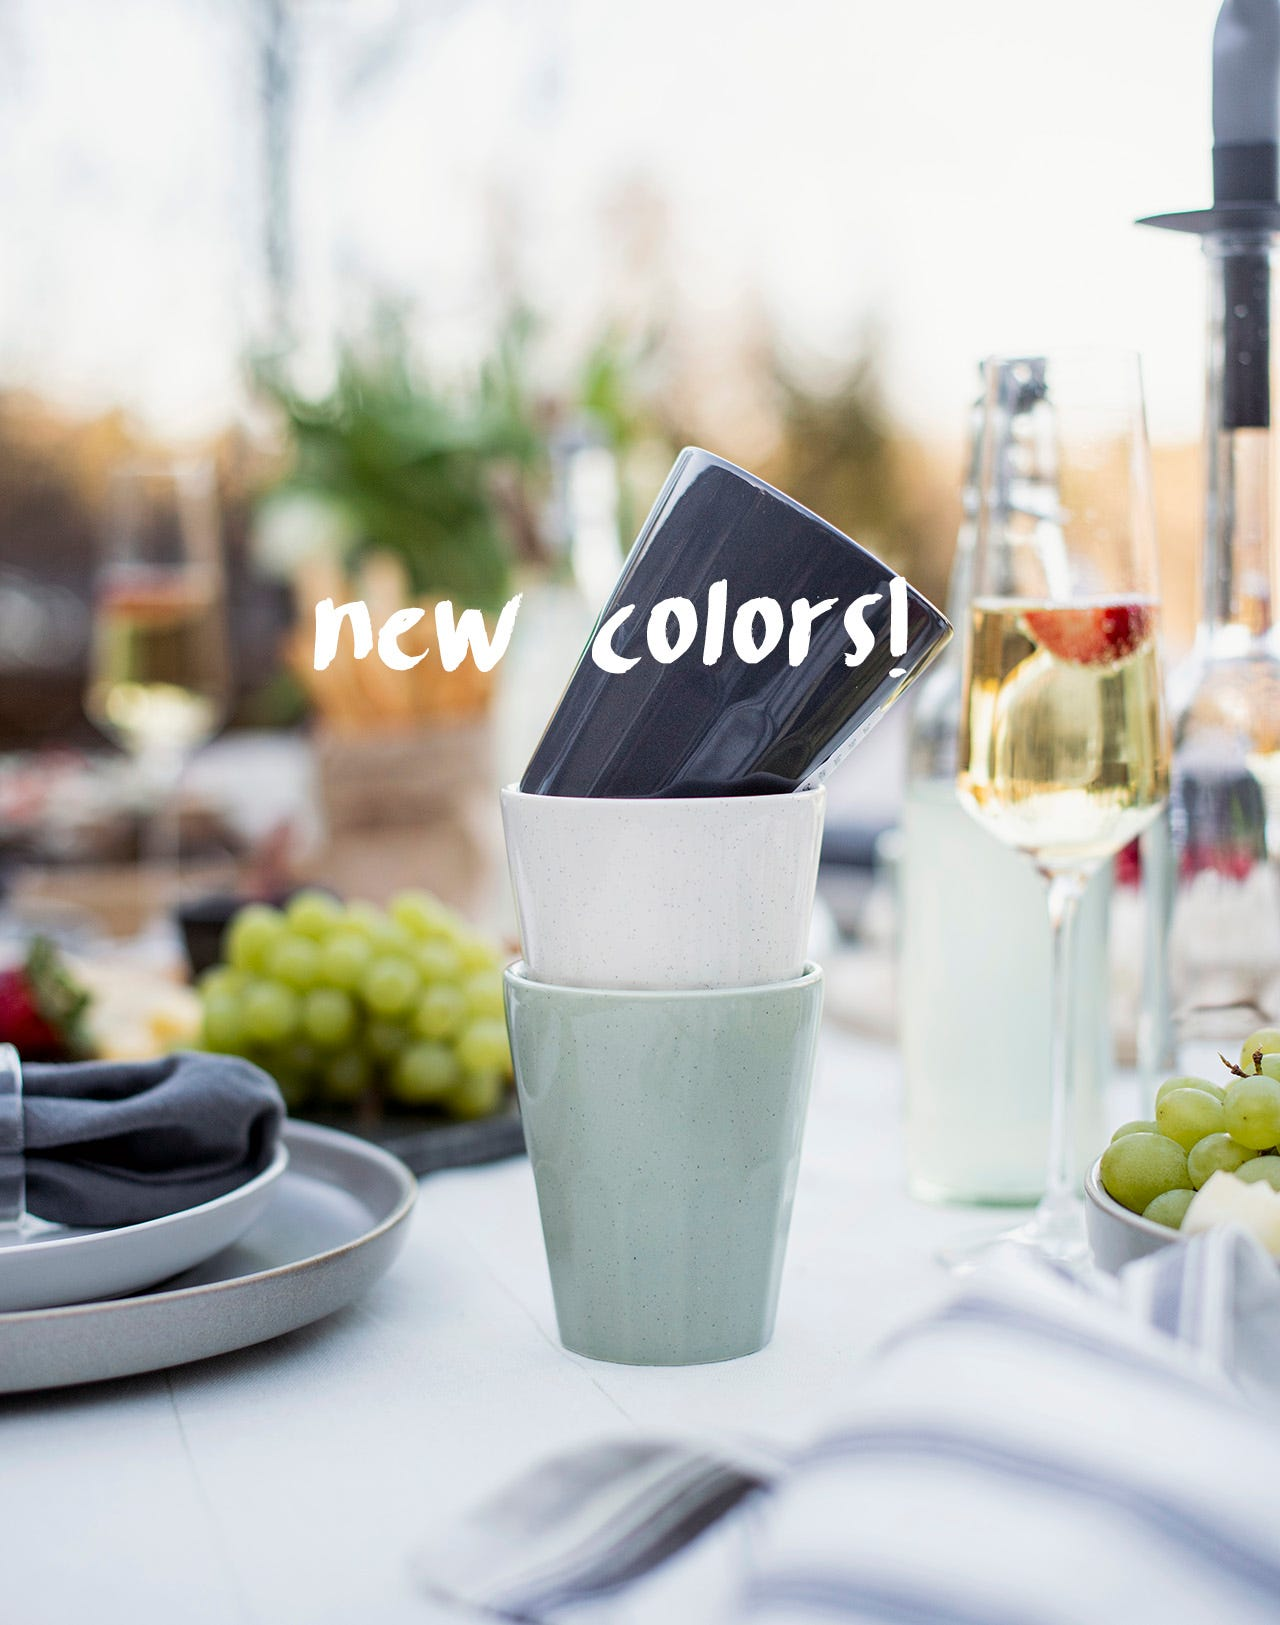 New colors - now in stock!